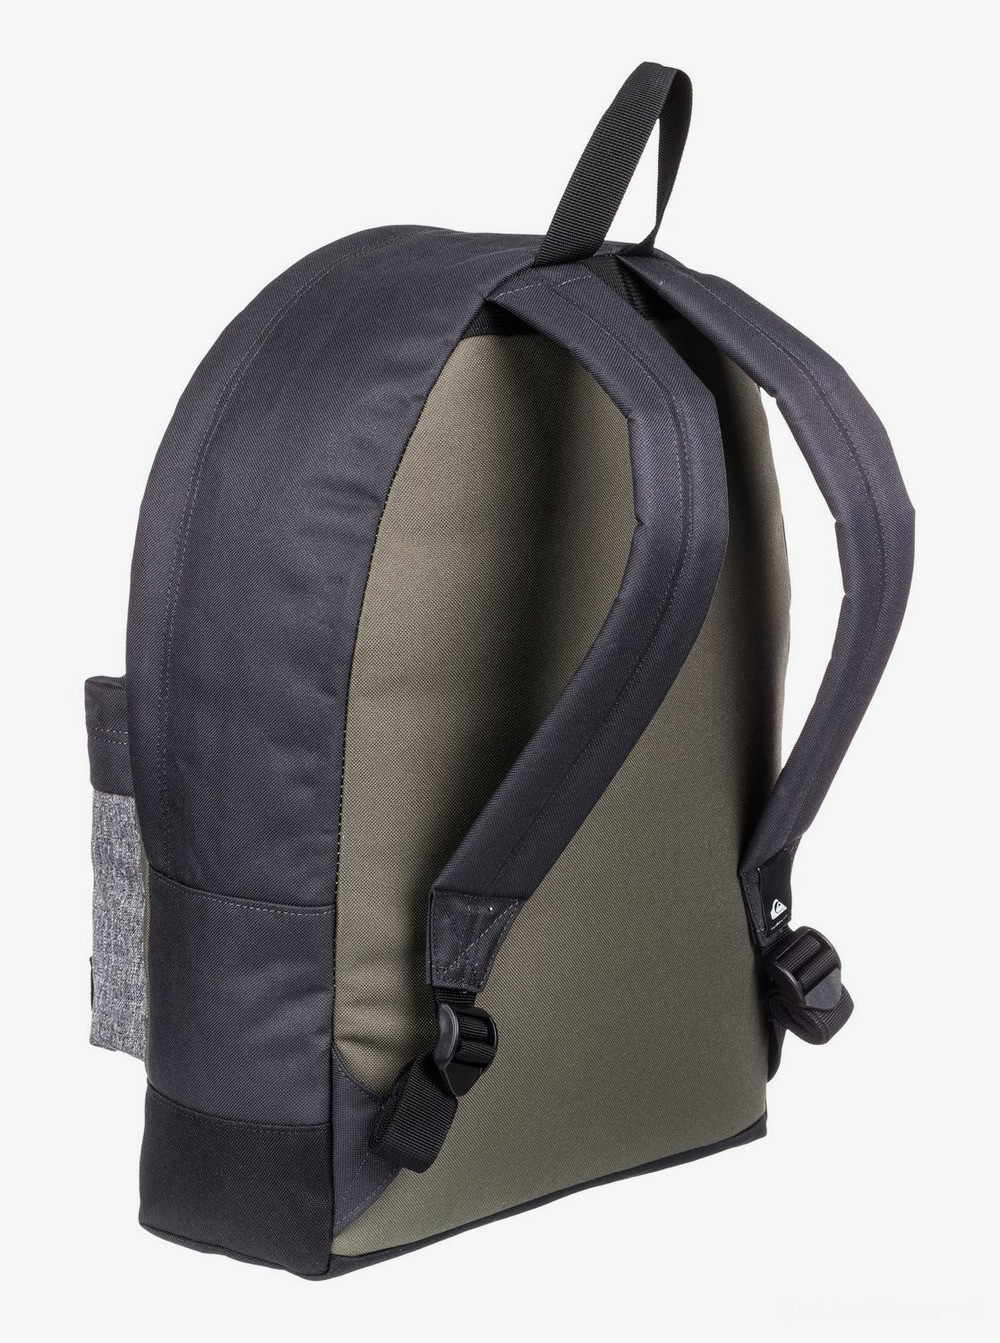 last chance everyday poster 25l medium backpack - kalamata best price limited sale